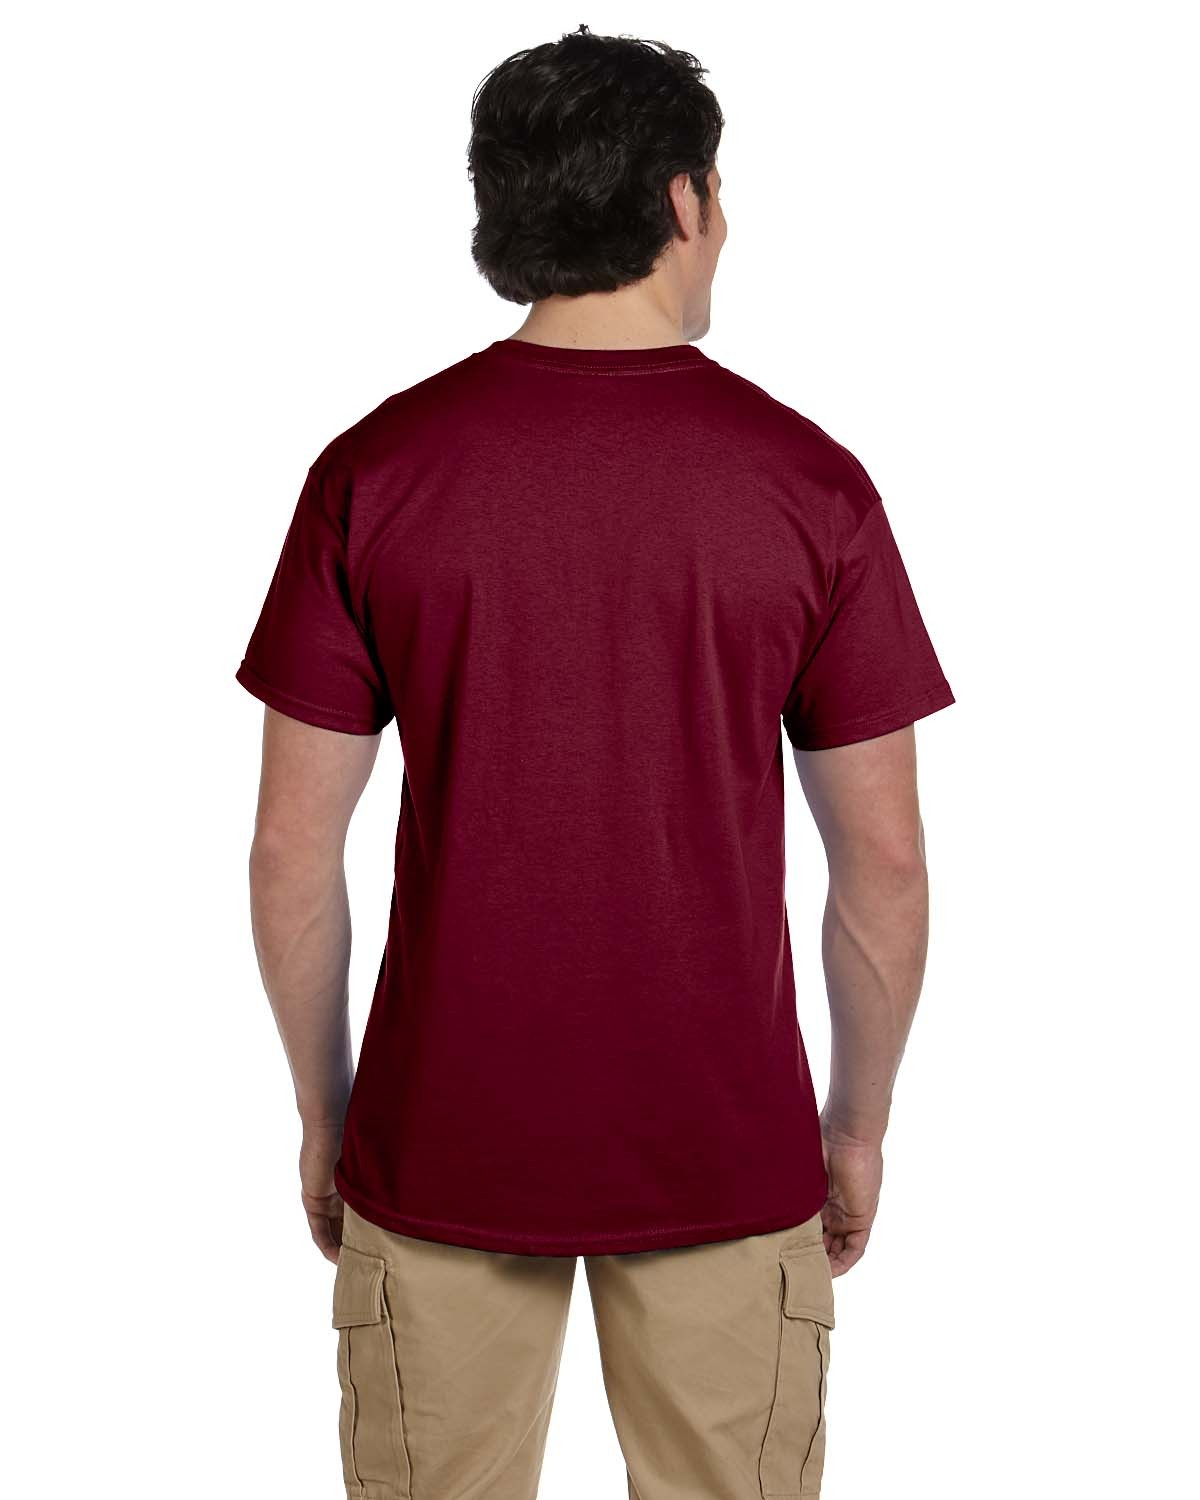 3931 Fruit of the Loom MAROON